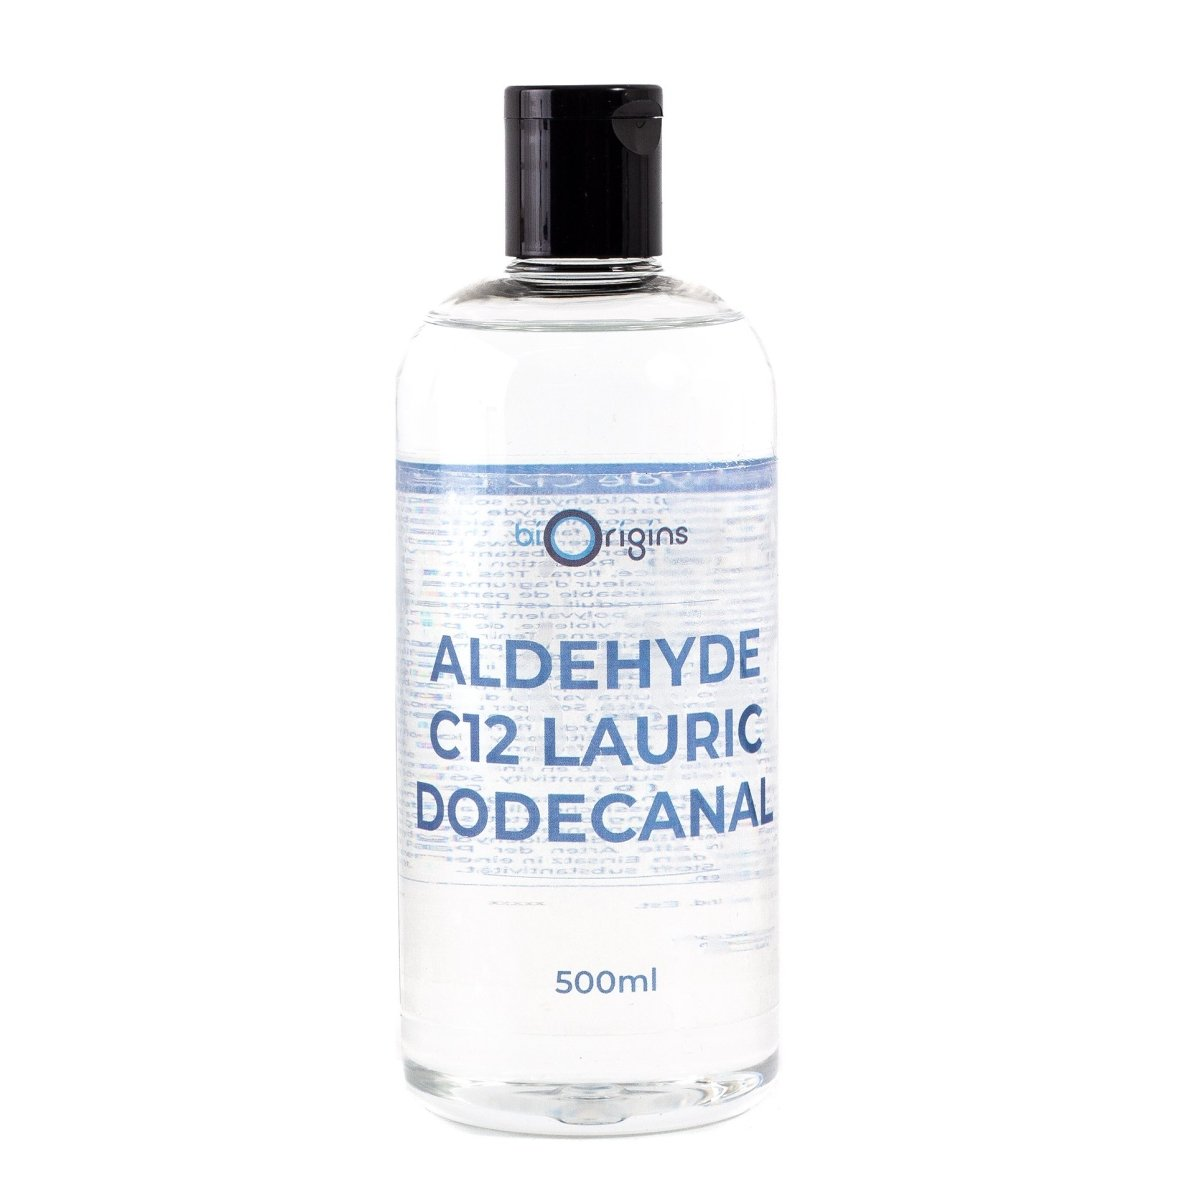 Aldehyde C12 Lauric Dodecanal - Mystic Moments UK